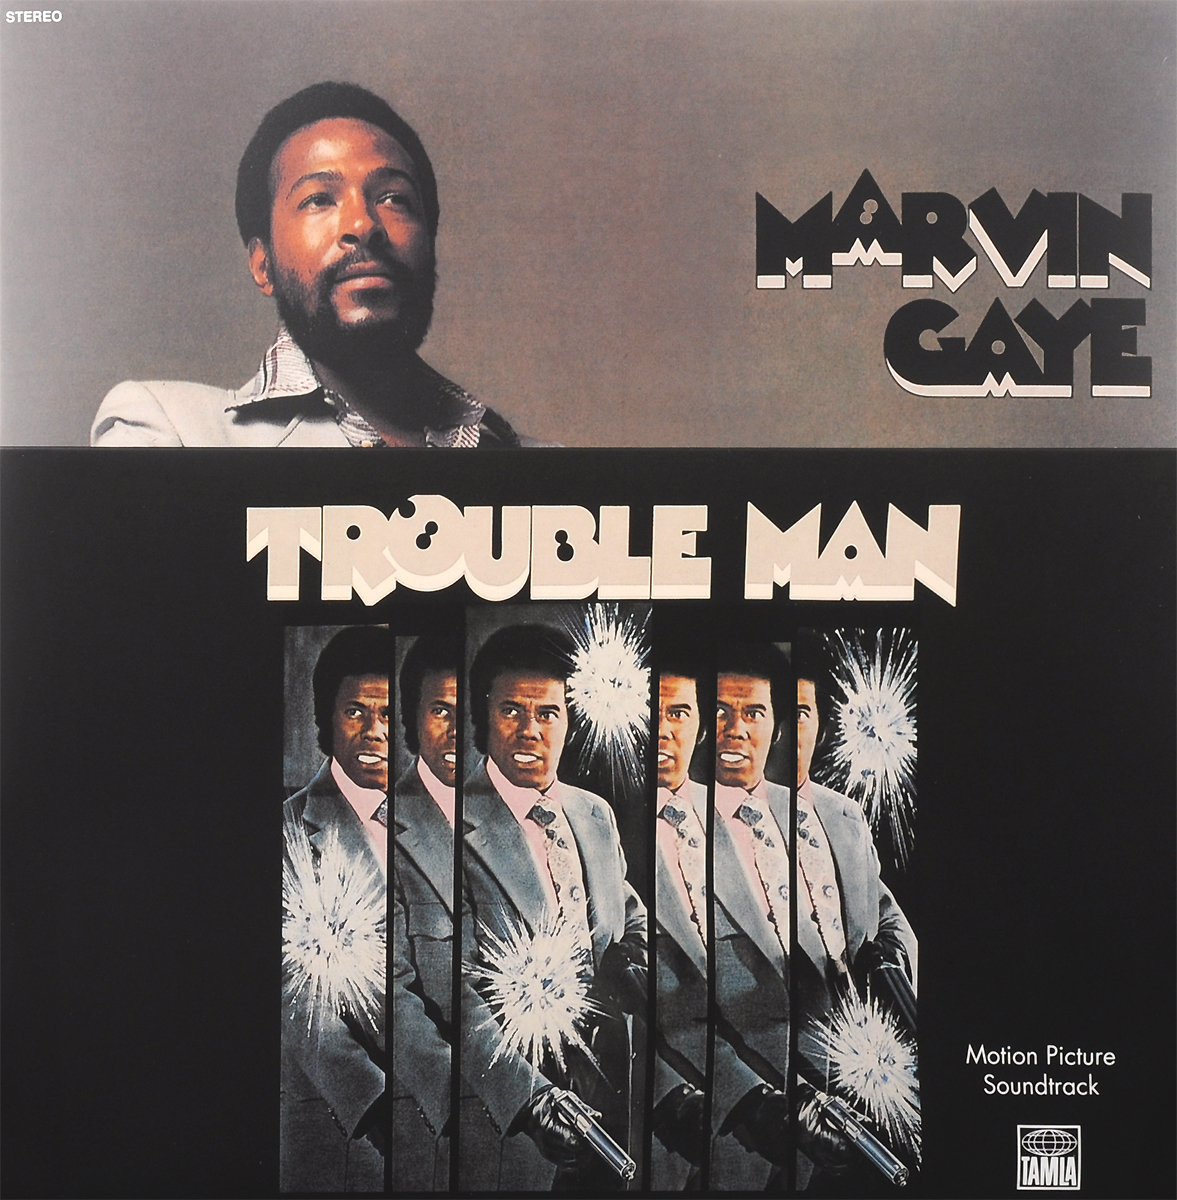 Marvin Gaye. Trouble Man. Motion Picture Soundtrack (LP)